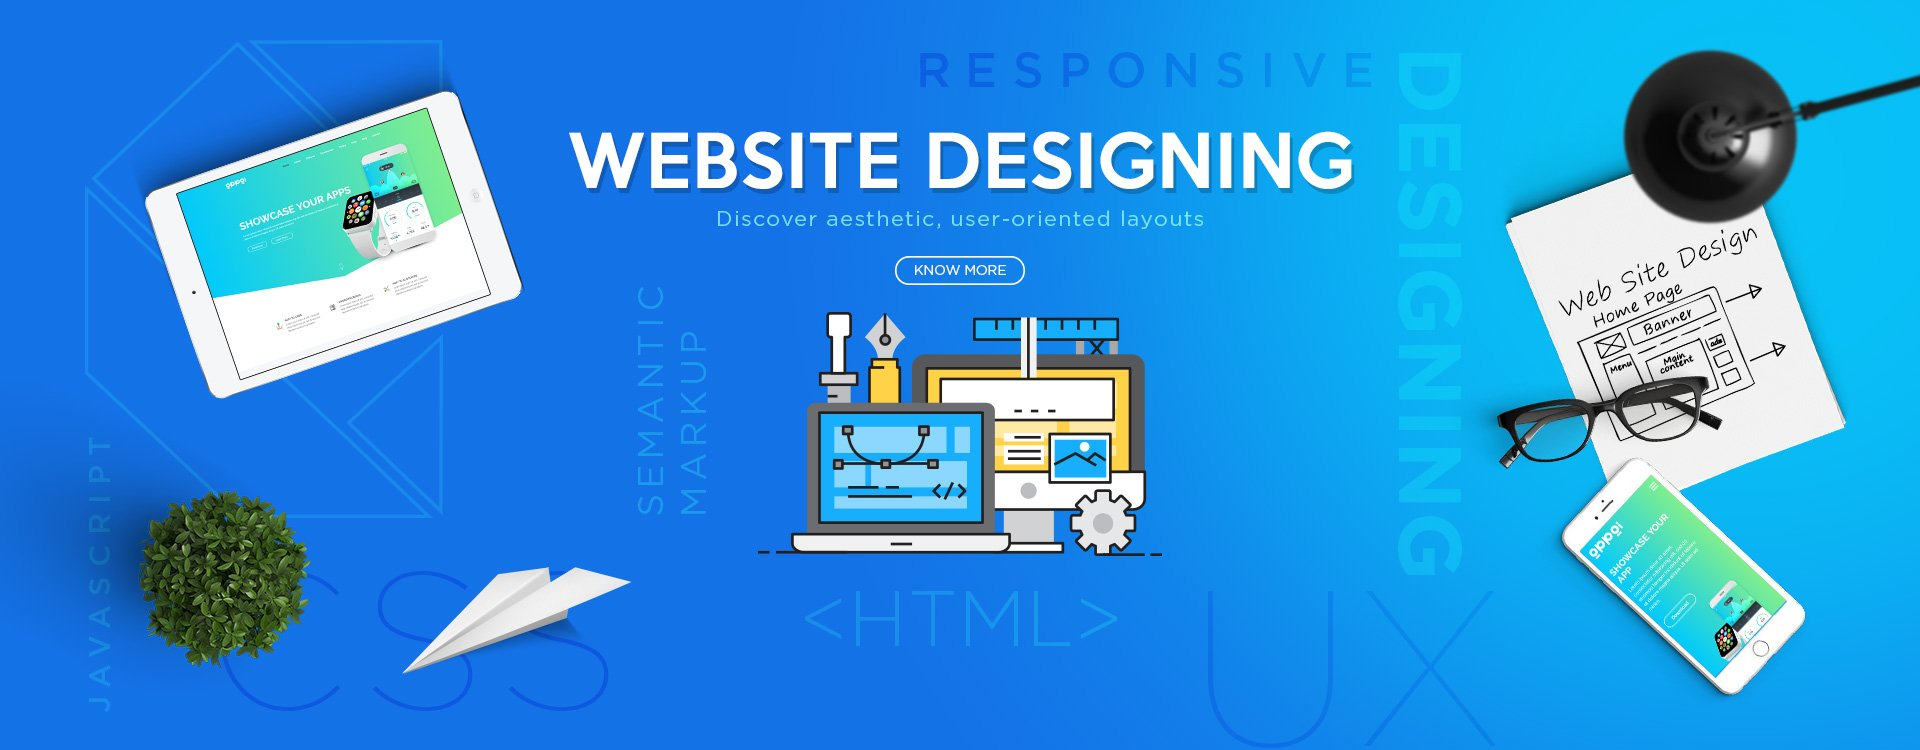 Things to Keep in Mind when choosing a Web Design Company